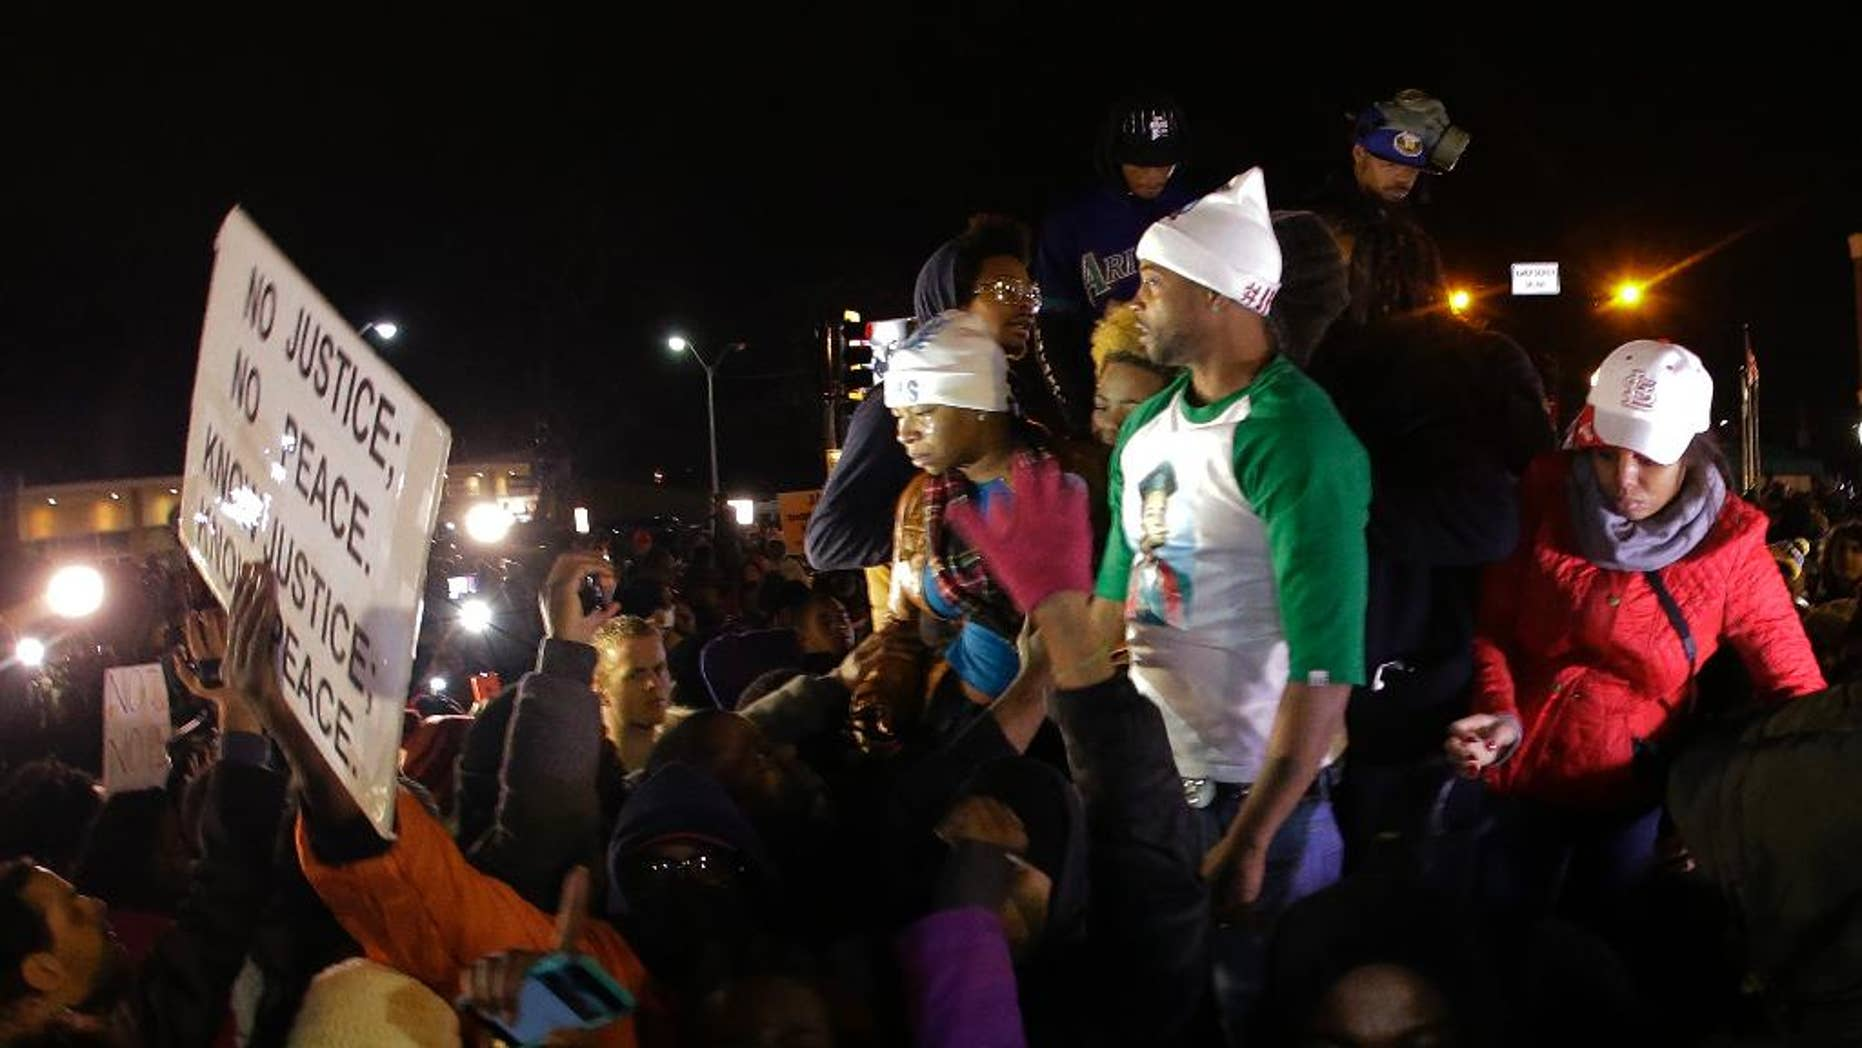 FILE - In this Nov. 24, 2014 file photo Louis Head, center right, Michael Brown's stepfather, and Brown's mother Lesley McSpadden, center left, react as  they listen to the announcement that a grand jury decided not to indict Ferguson police officer Darren Wilson who fatally shot 18-year-old  Brown. Brown has apologized for angry comments he made after the decision was announced, but said his remarks had nothing to do with the arson and looting that ravaged Ferguson and the surrounding area. (AP Photo/Charlie Riedel, File)